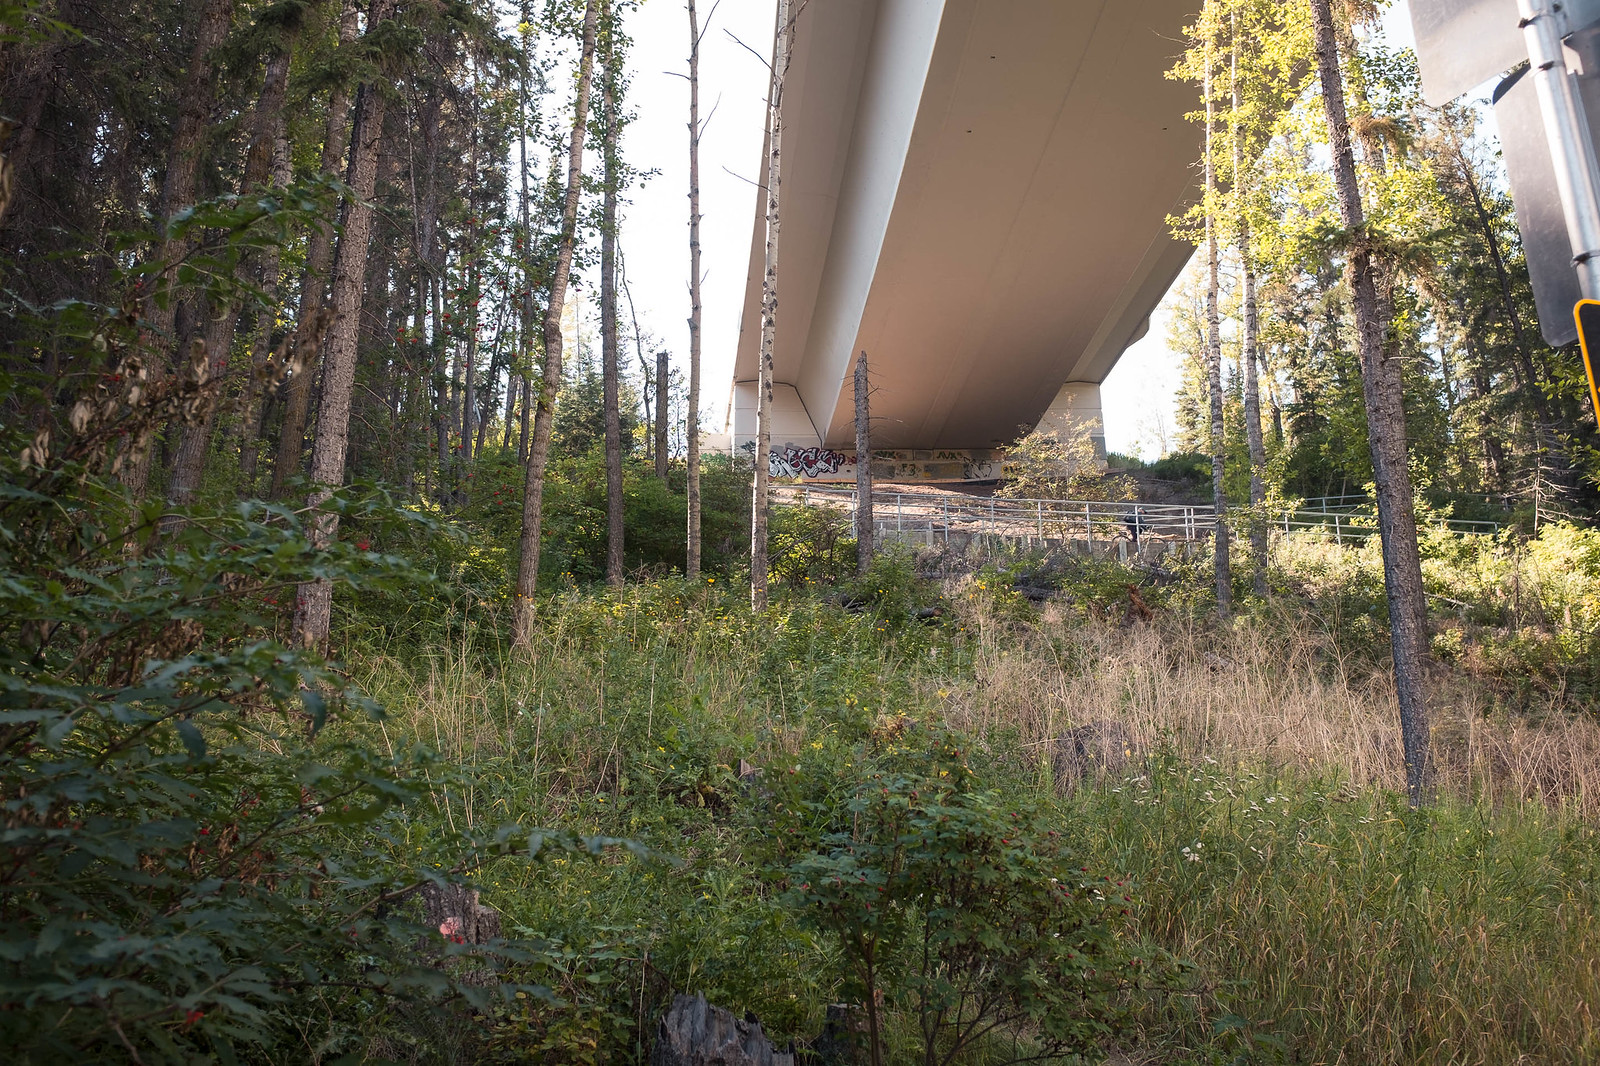 Foresty slope underneath a highway bridge